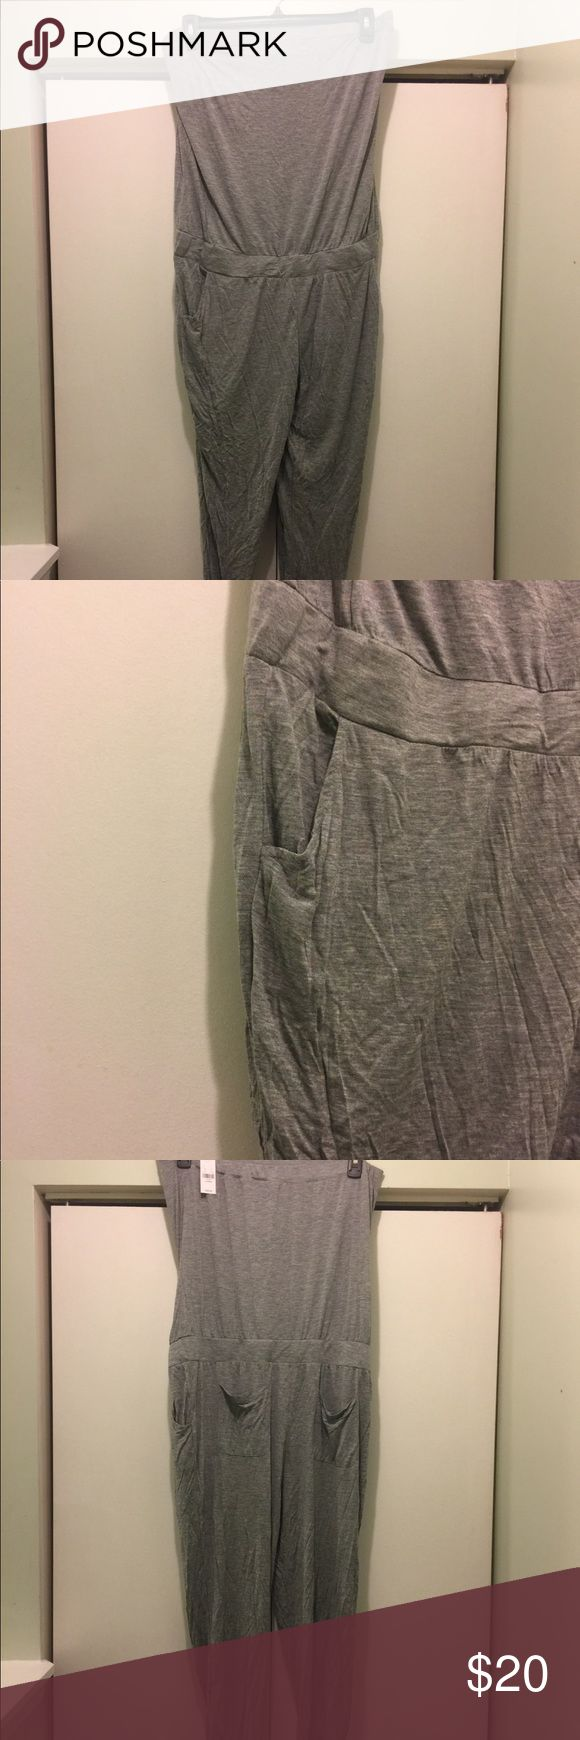 NY &CO Sleeveless Jumper (NWT) Brand new! Heather grey jumper with cute pocket detail in front and back. Has gathered jogger leg detail. Super cute and comfy! Size xl New York & Company Pants Jumpsuits & Rompers